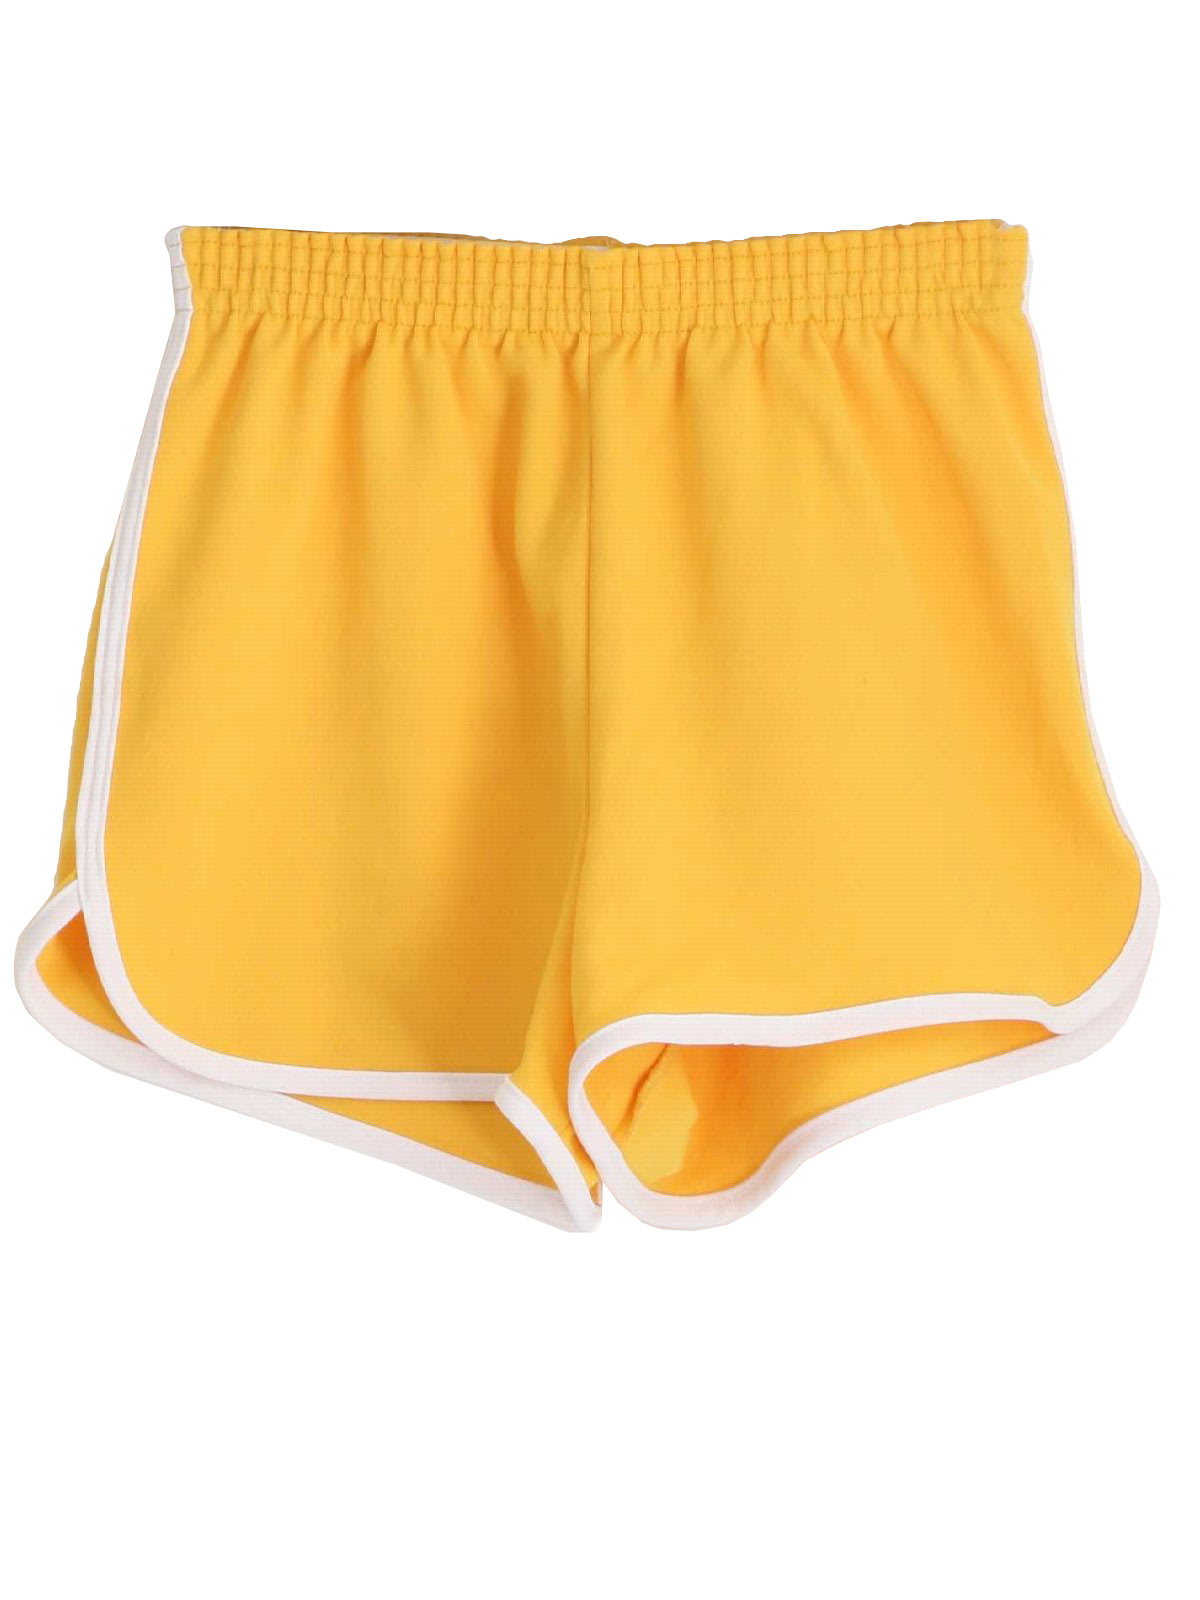 70s Vintage Broderick Shorts: 70s -Broderick- Mens yellow and ...